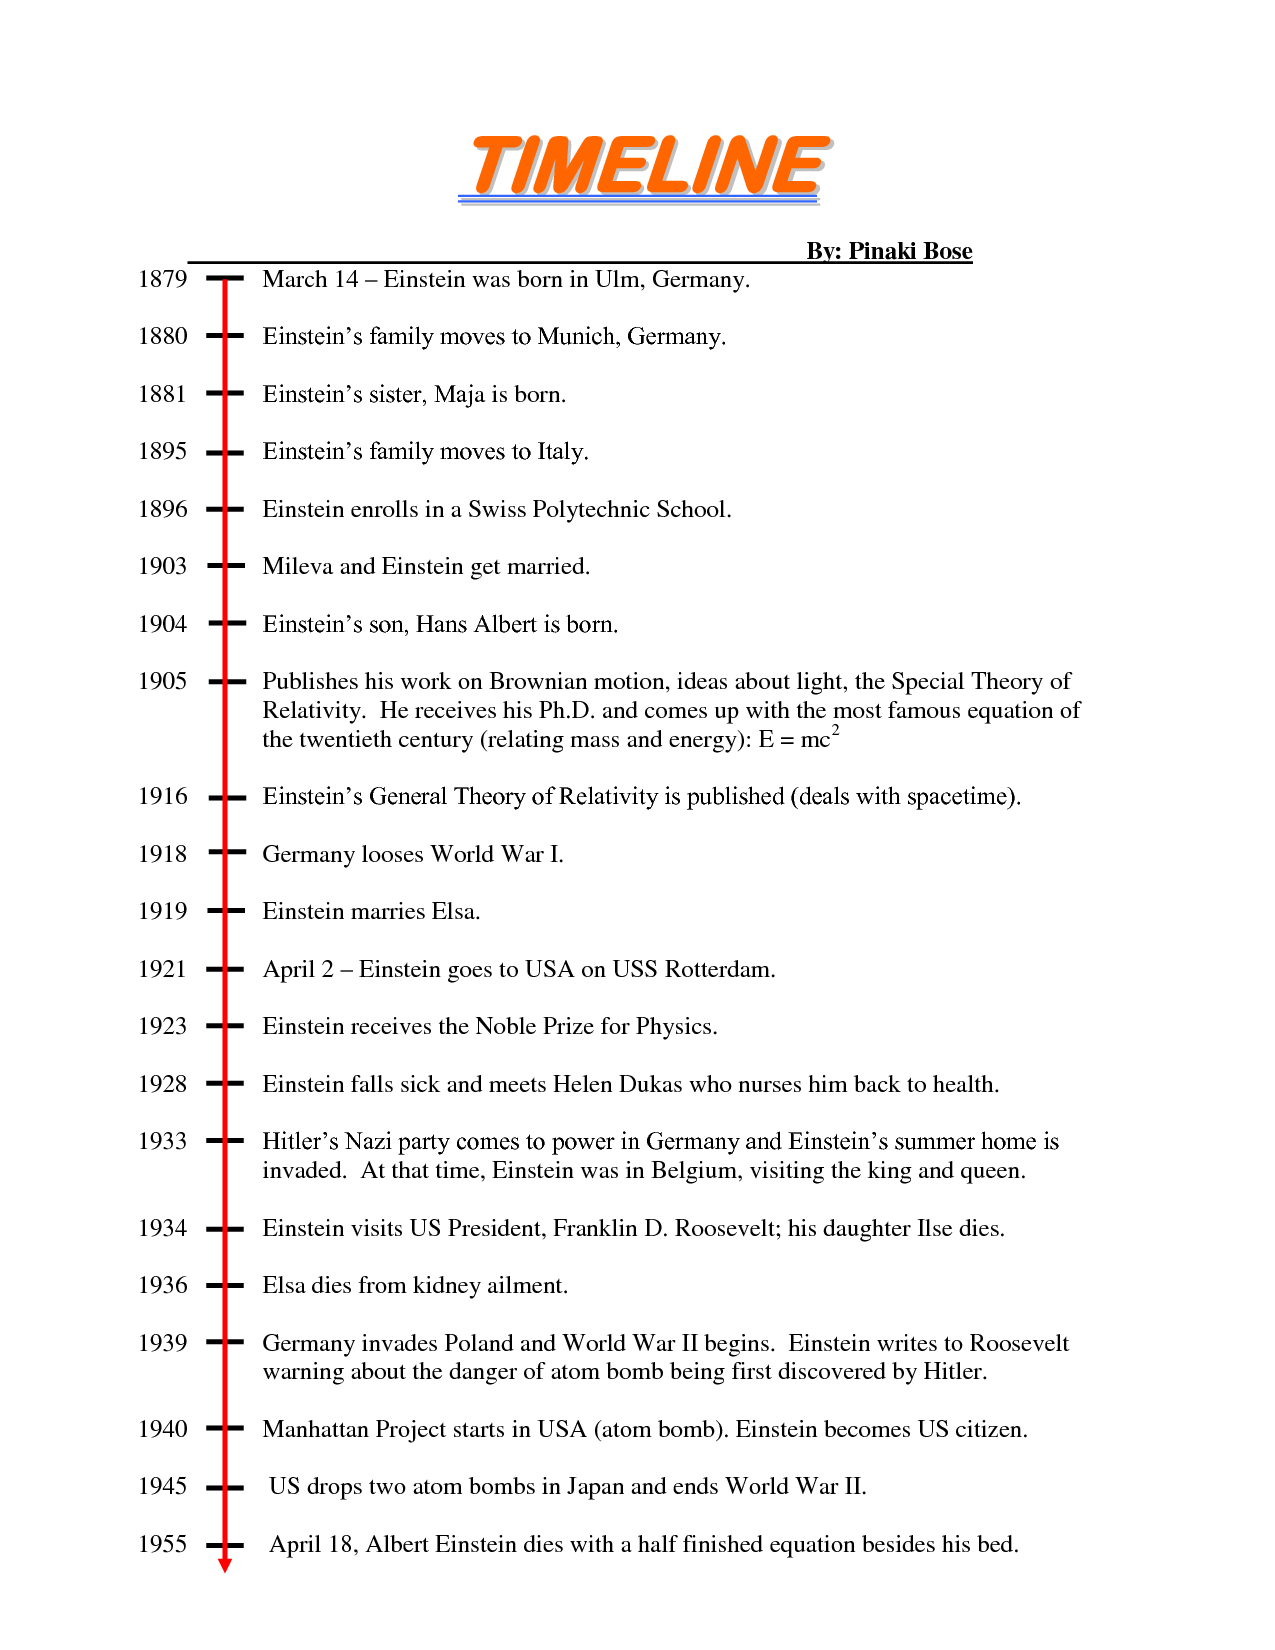 Albert Einstein Invention Timeline | Albert Einstein Timeline ...